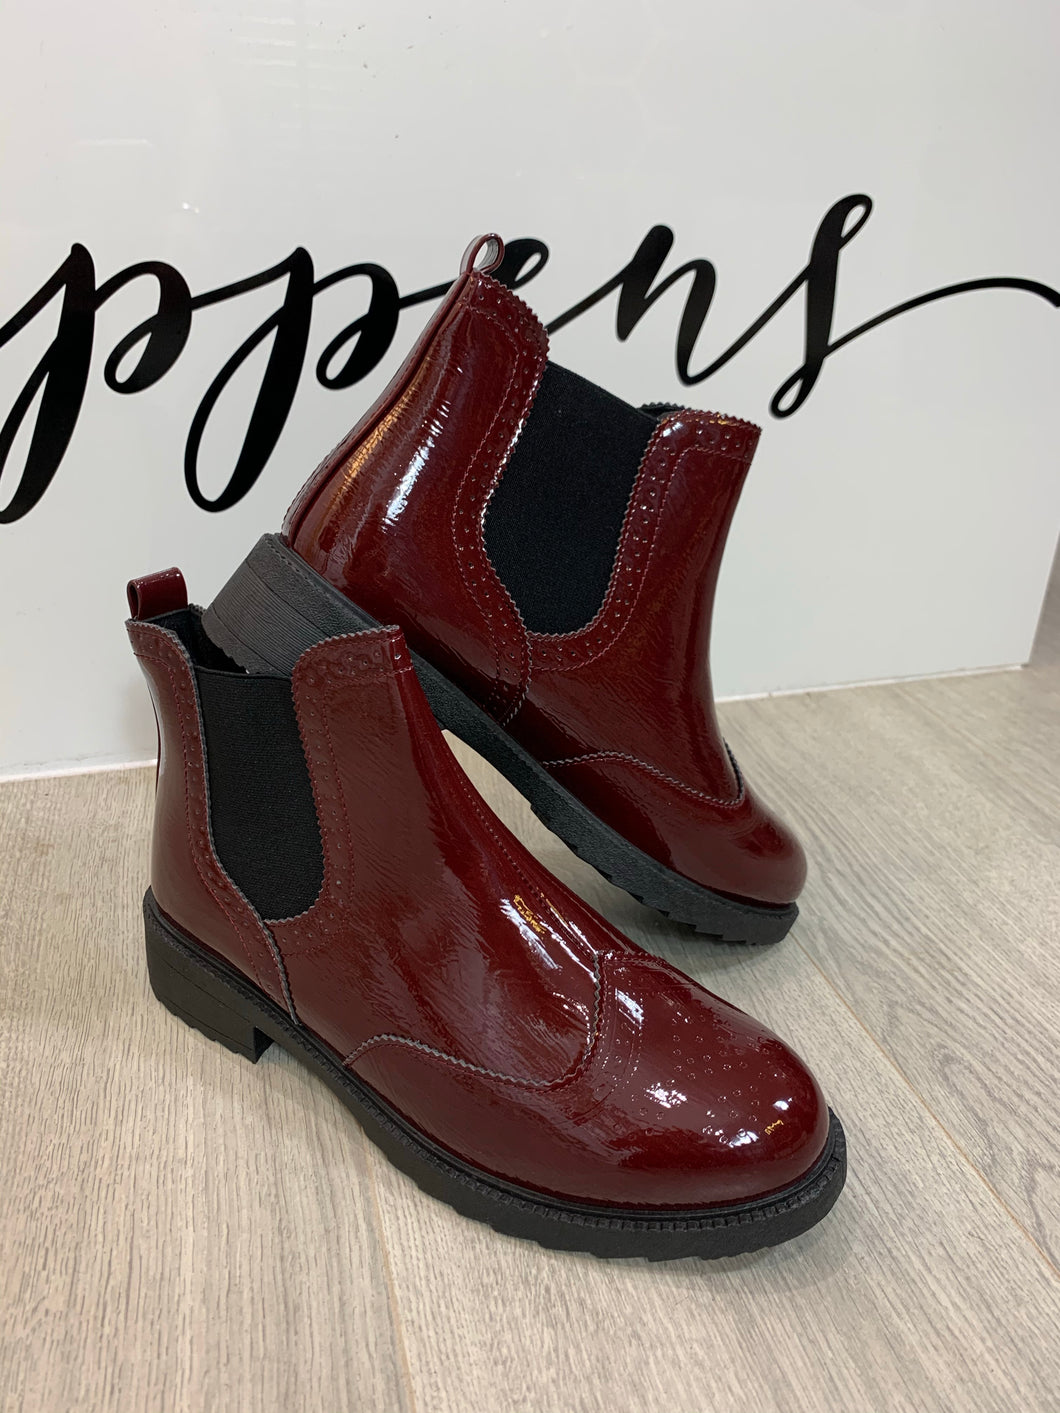 Wine Chunky Chelsea Boots - chichappensboutique